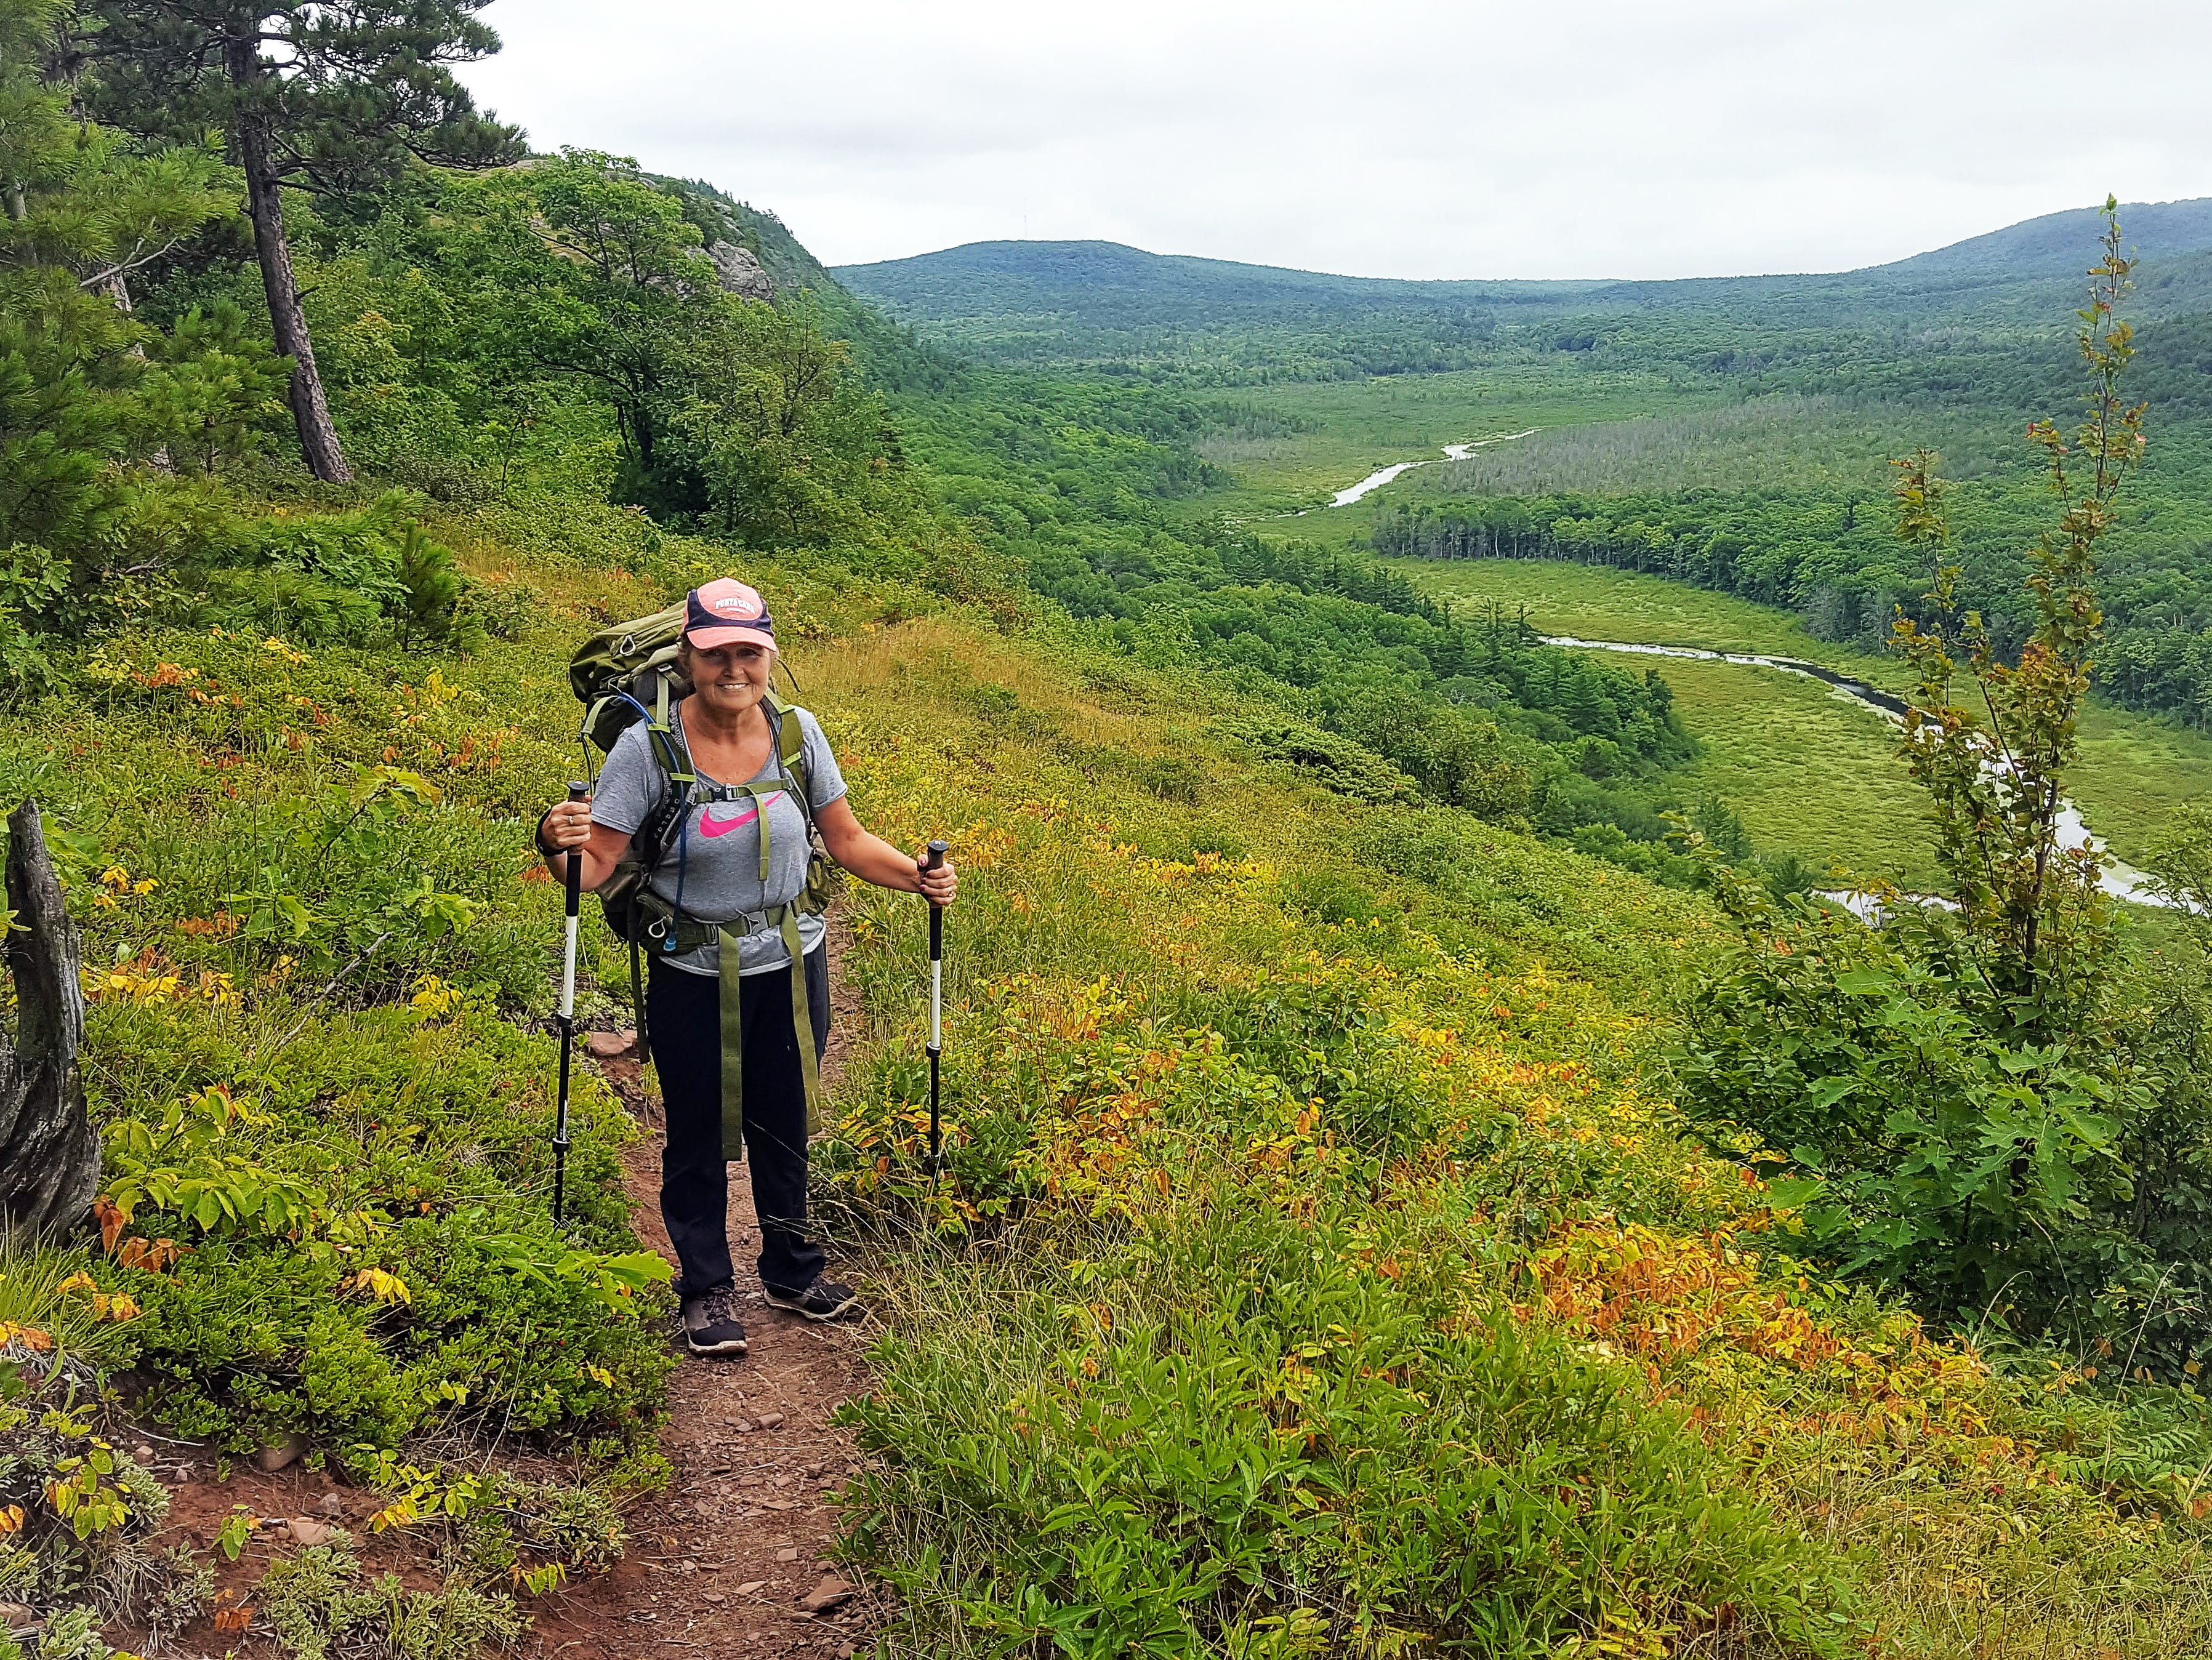 Carol Lewis hikes along the Escarpment Trail in the Porcupine Mountains Wilderness State Park in Michigan's Upper Peninsula.